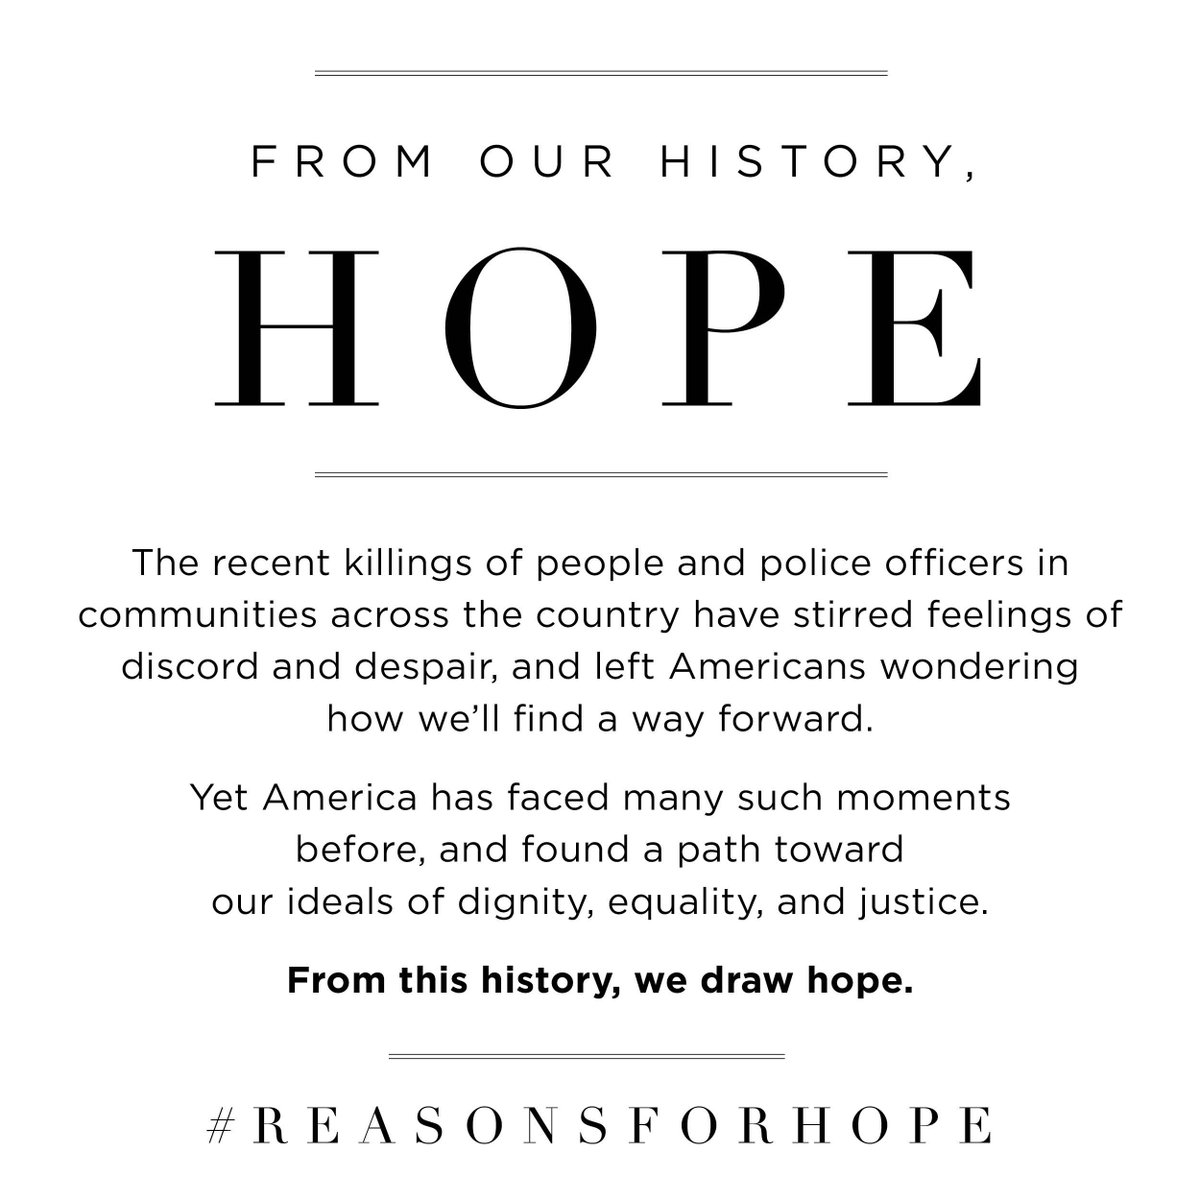 In spite of anguish & uncertainty, ideas, inspiration & action abound. Share what gives u hope with #ReasonsForHope https://t.co/bXSLaFJ9ZH